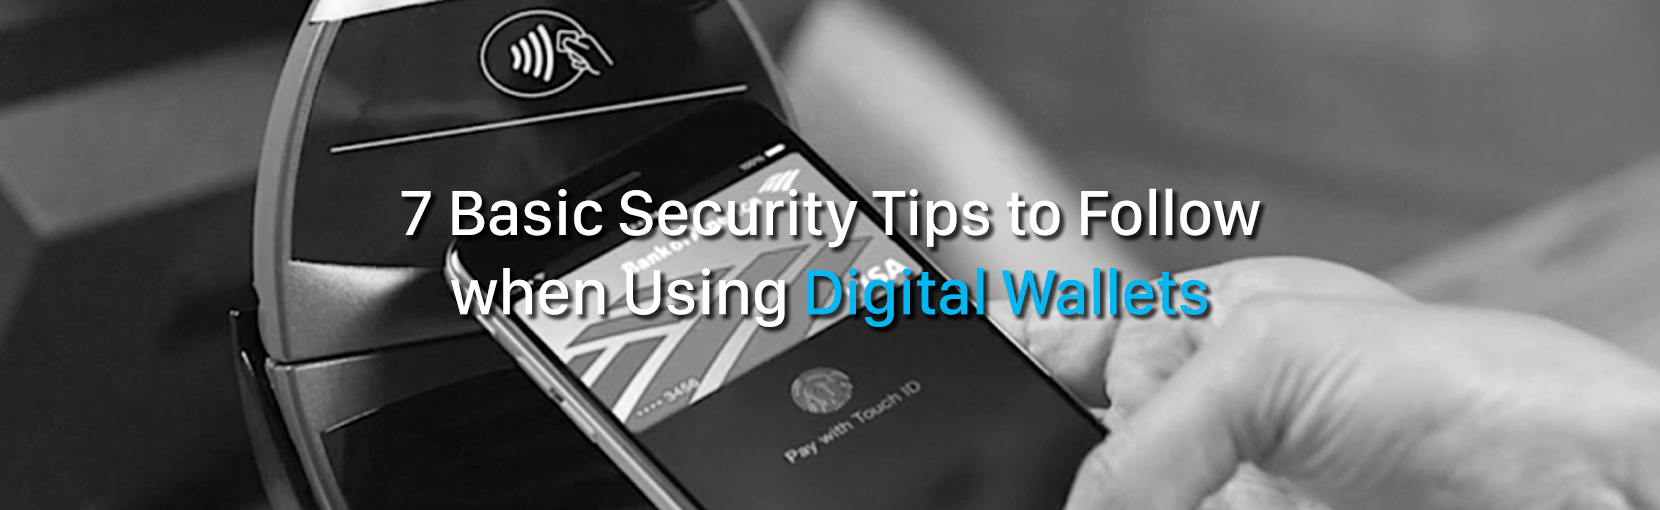 7-Basic-Security-Tips-to-Follow-when-Using-Digital-Wallets.png